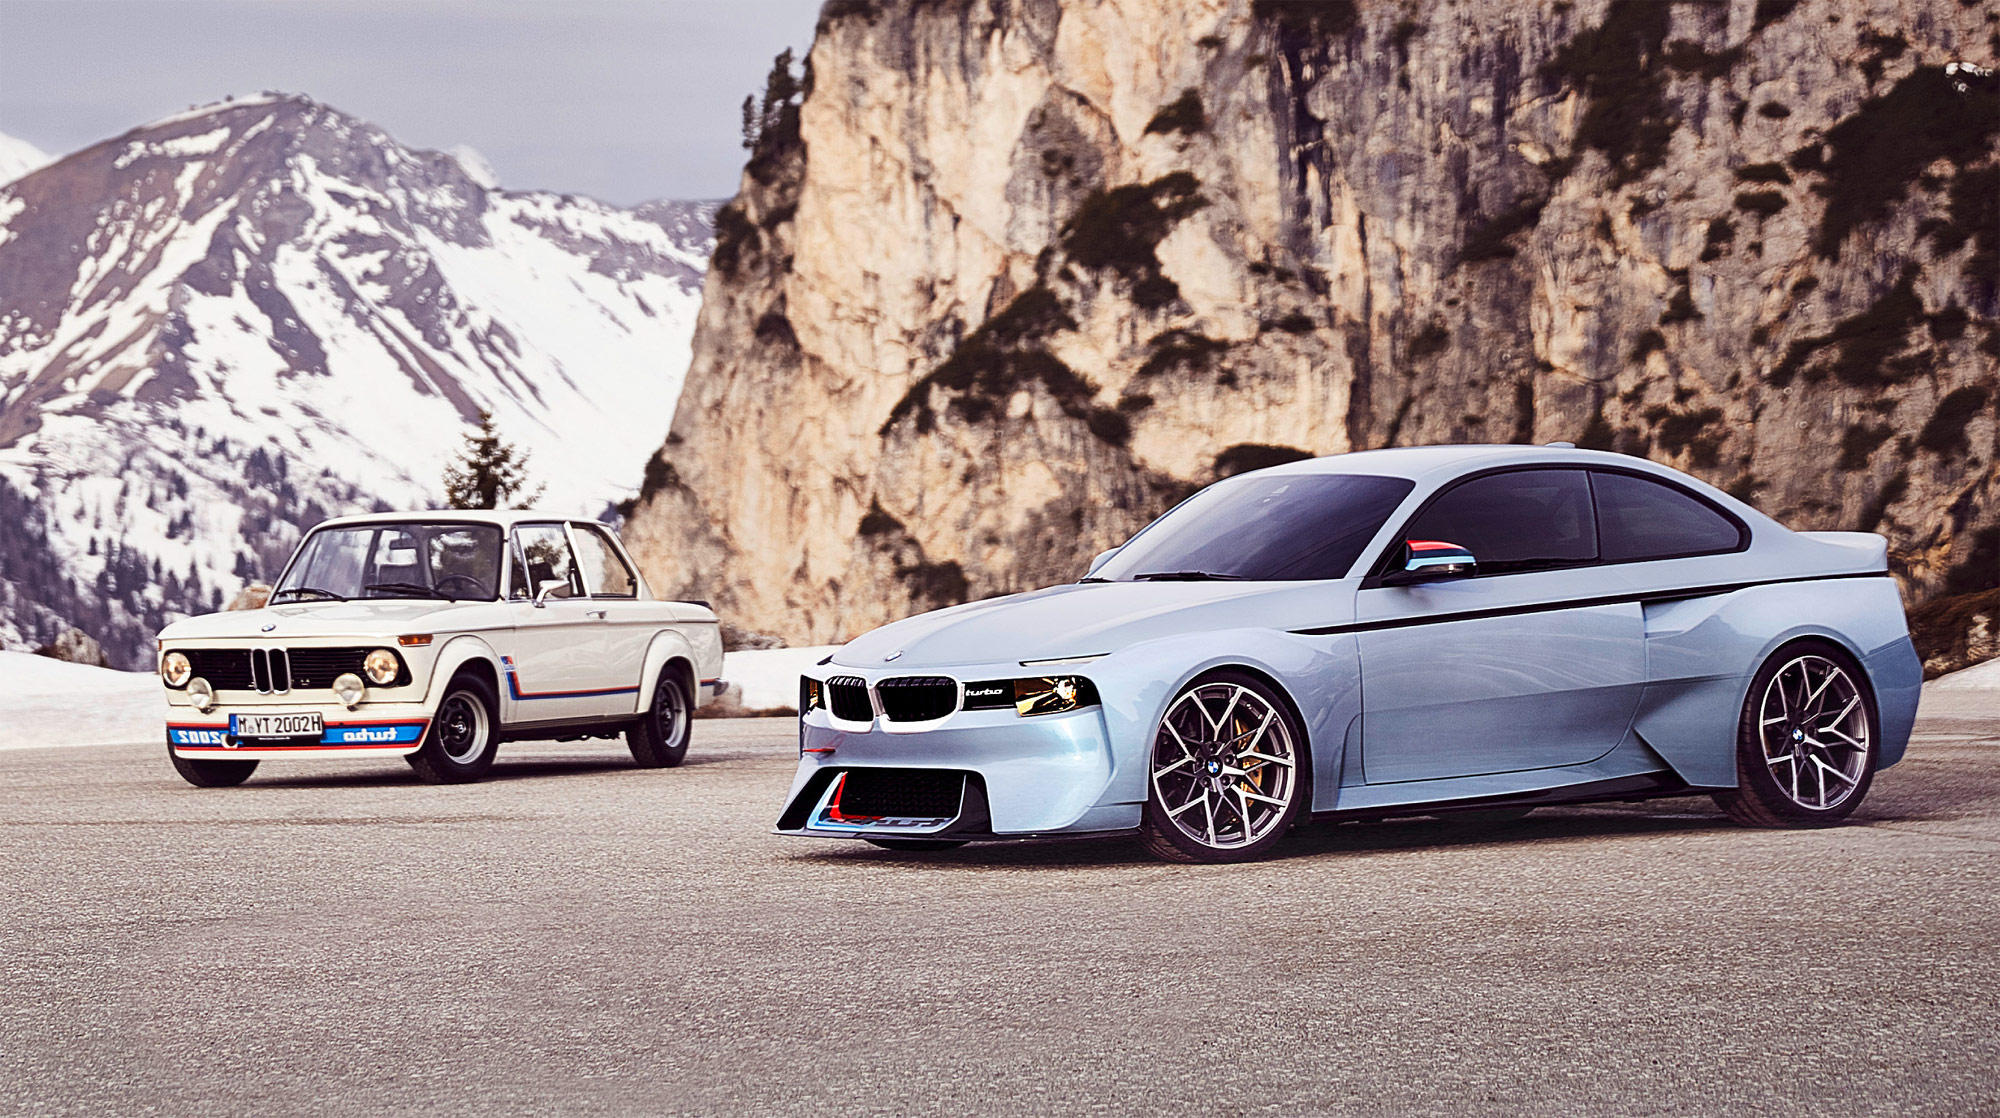 The BMW 2002 Hommage – Celebrating 50 Years Of The 02 Range